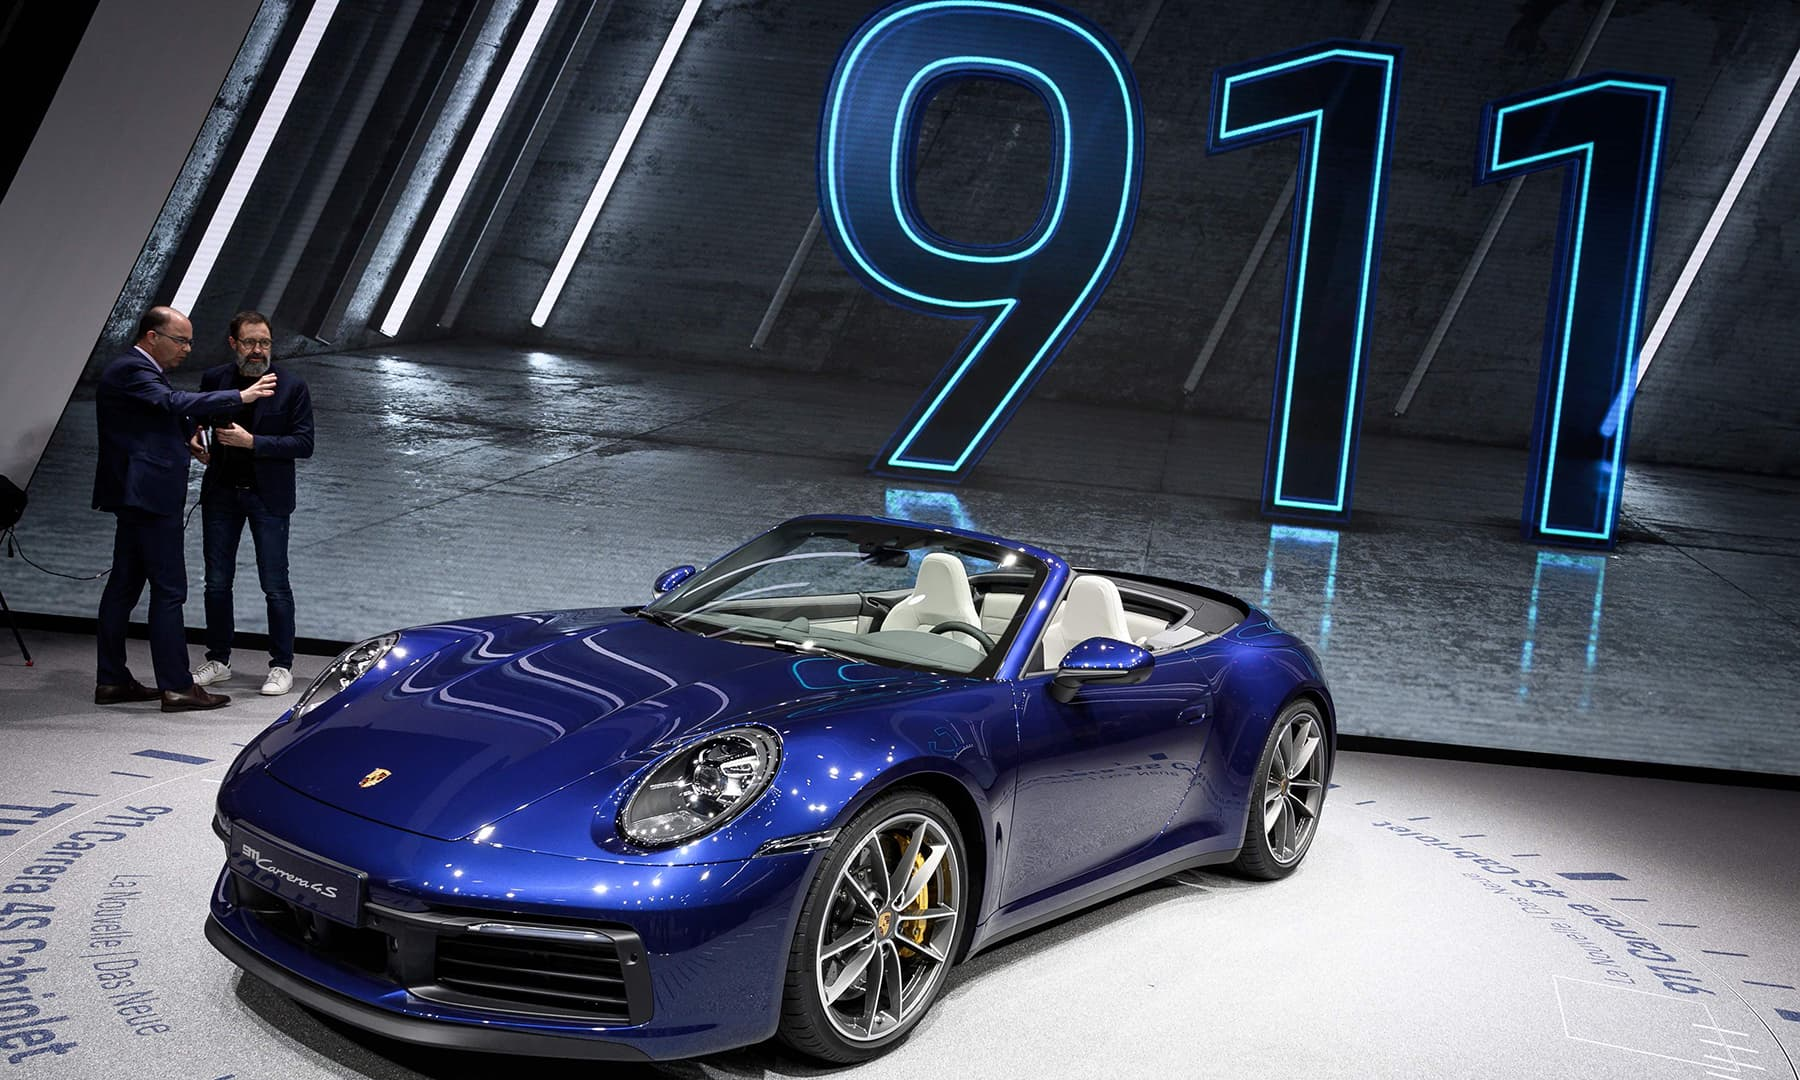 The new Porsche 911 Cabriolet model car is seen at the booth of the German carmaker ahead of the Geneva International Motor Show. — AFP